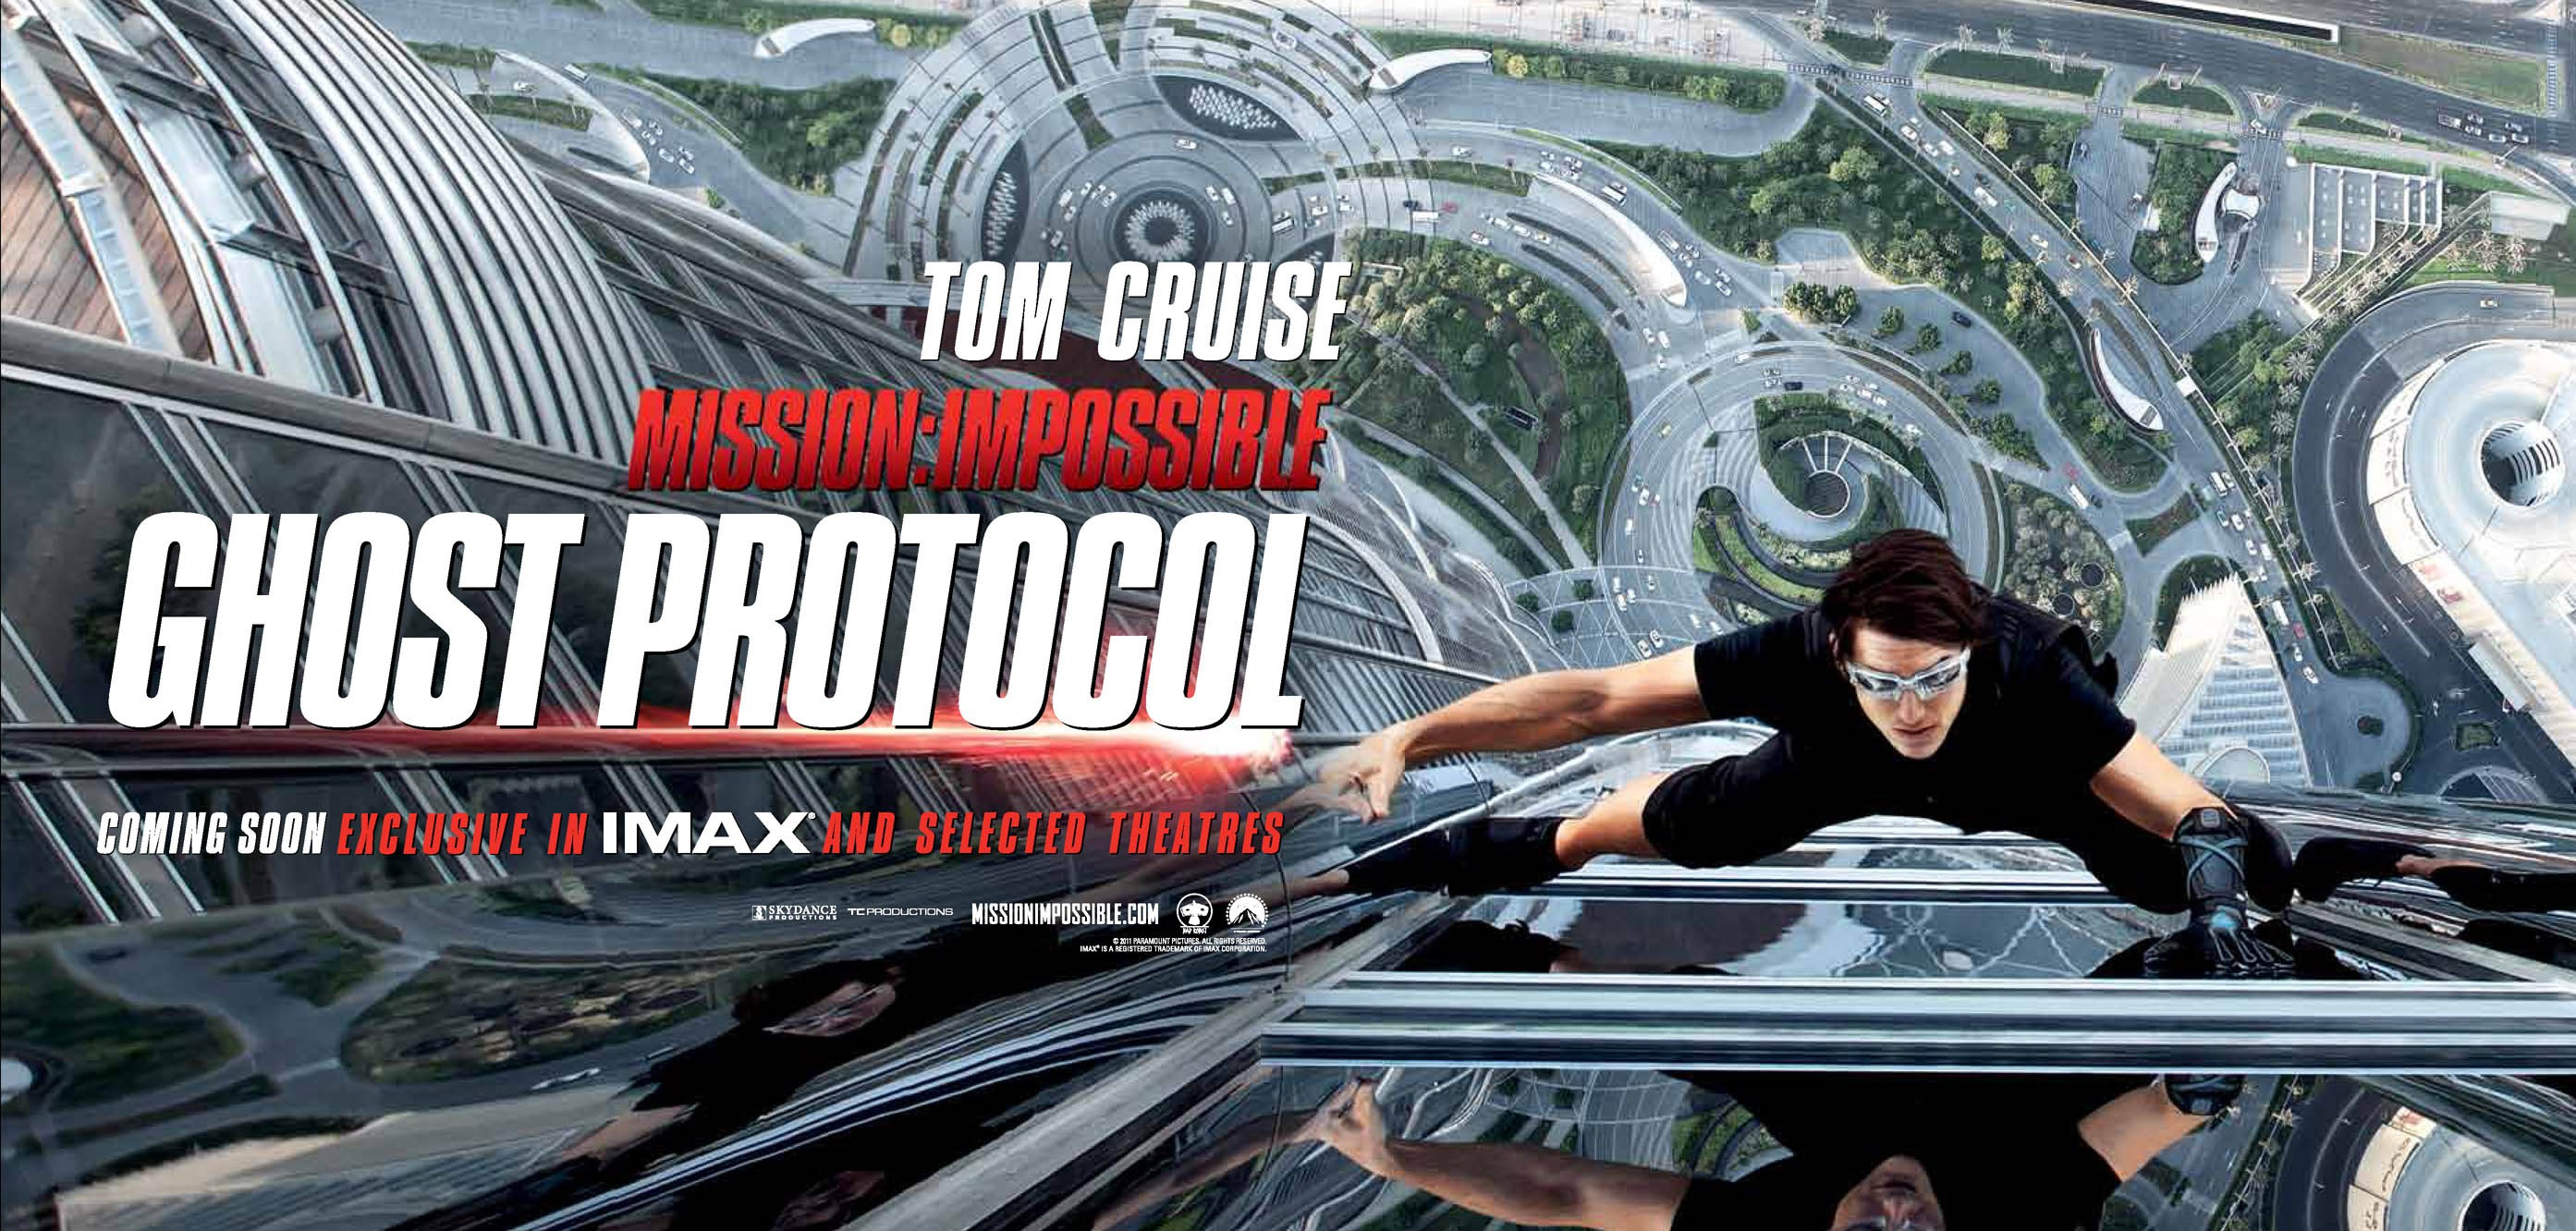 Quickview Mission Impossible Ghost Protocol 2011 Meewella Com